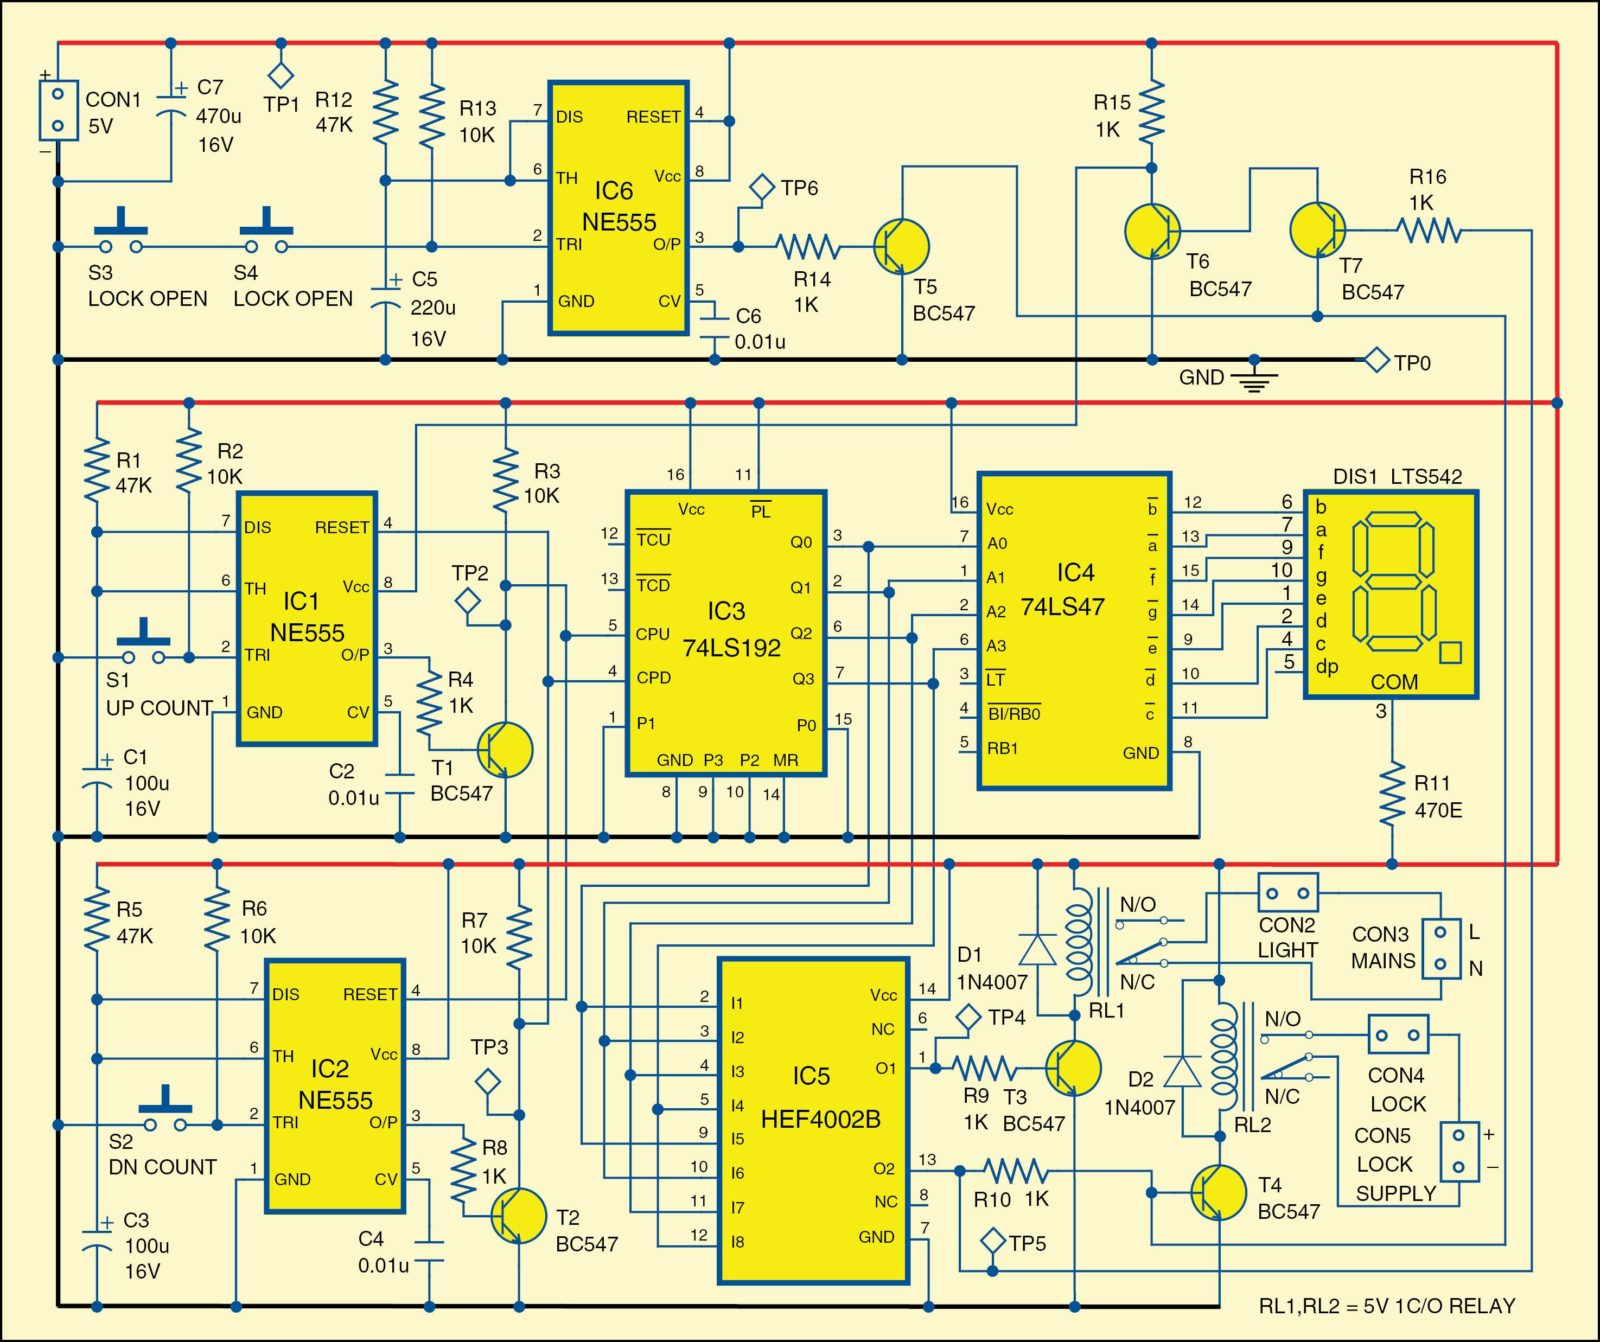 hight resolution of 1 circuit diagram of the automatic lock and lights circuit 4e6 fig 2